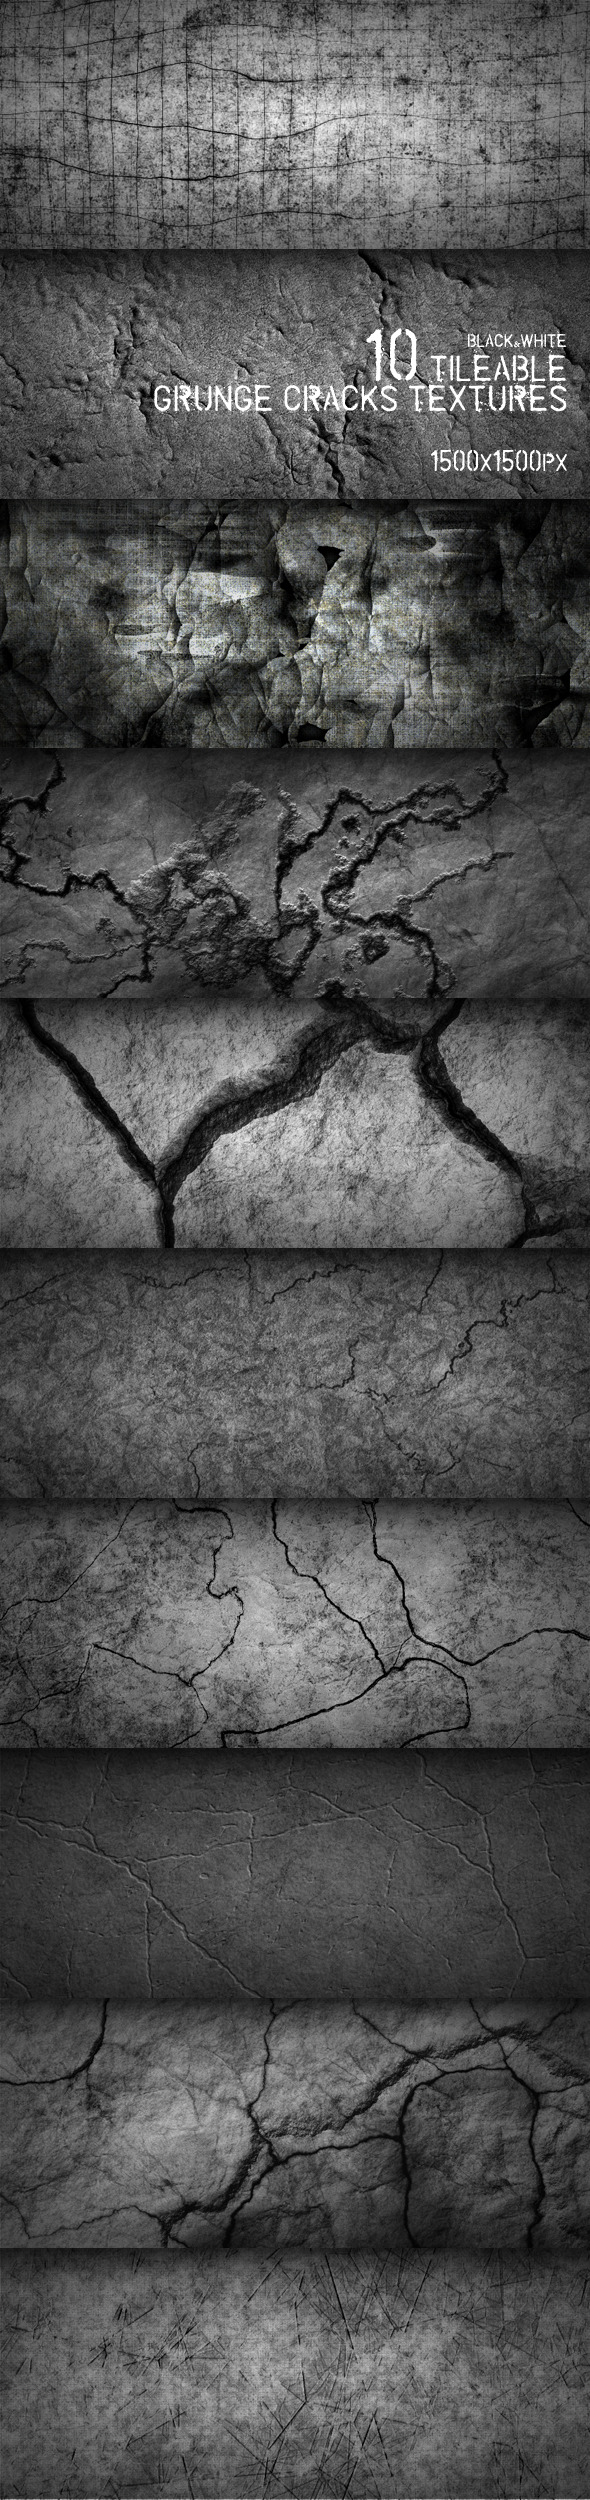 10 Tileable Grunge Cracks Textures - Miscellaneous Textures / Fills / Patterns